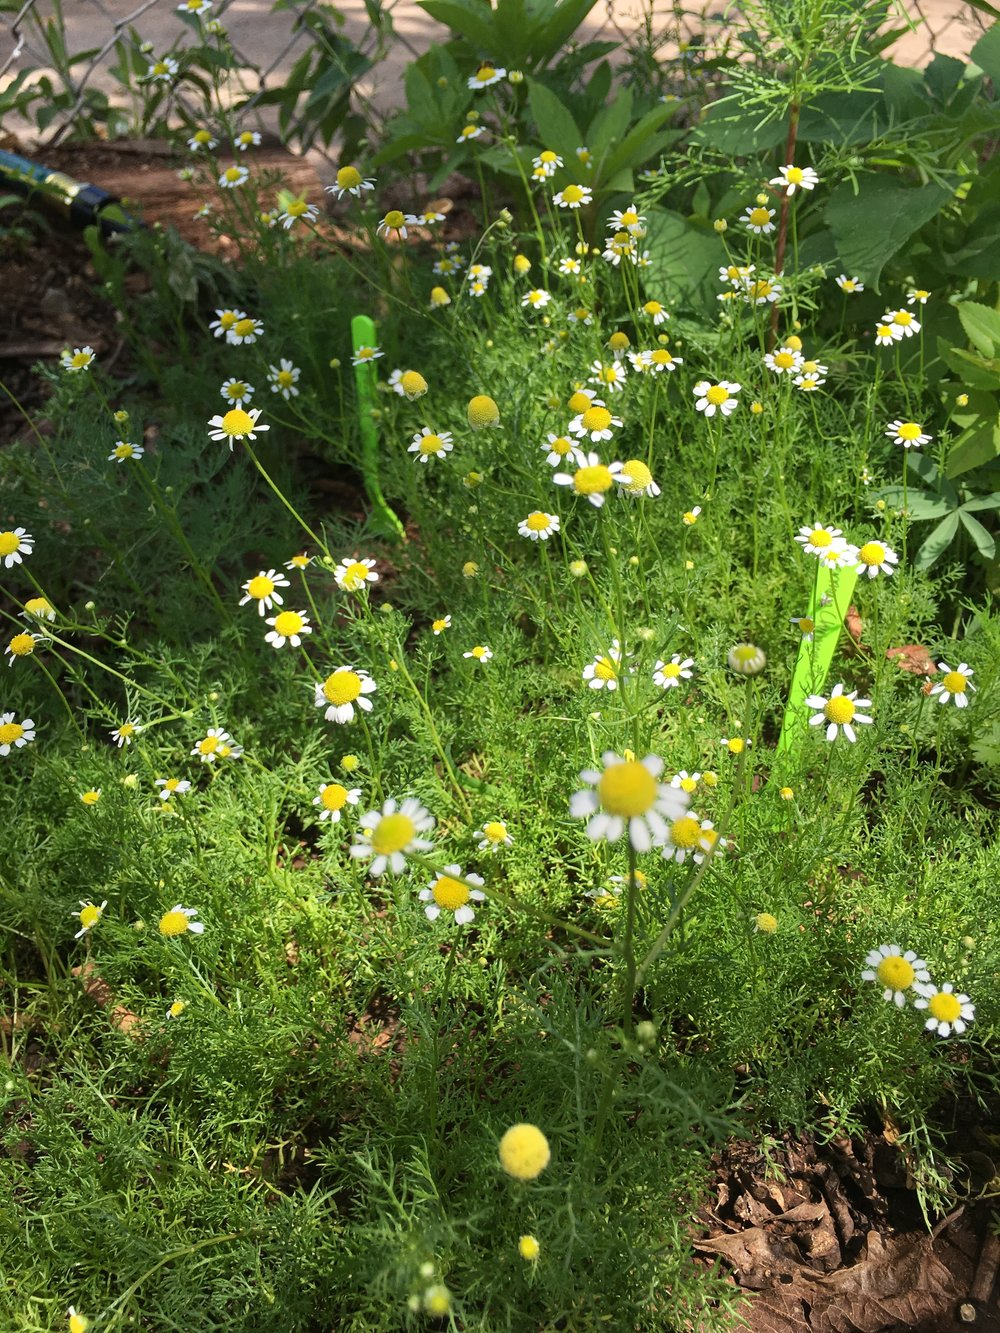 My chamomile garden! I made tea, tinctures and glycerites from this amazing crop of herbs.